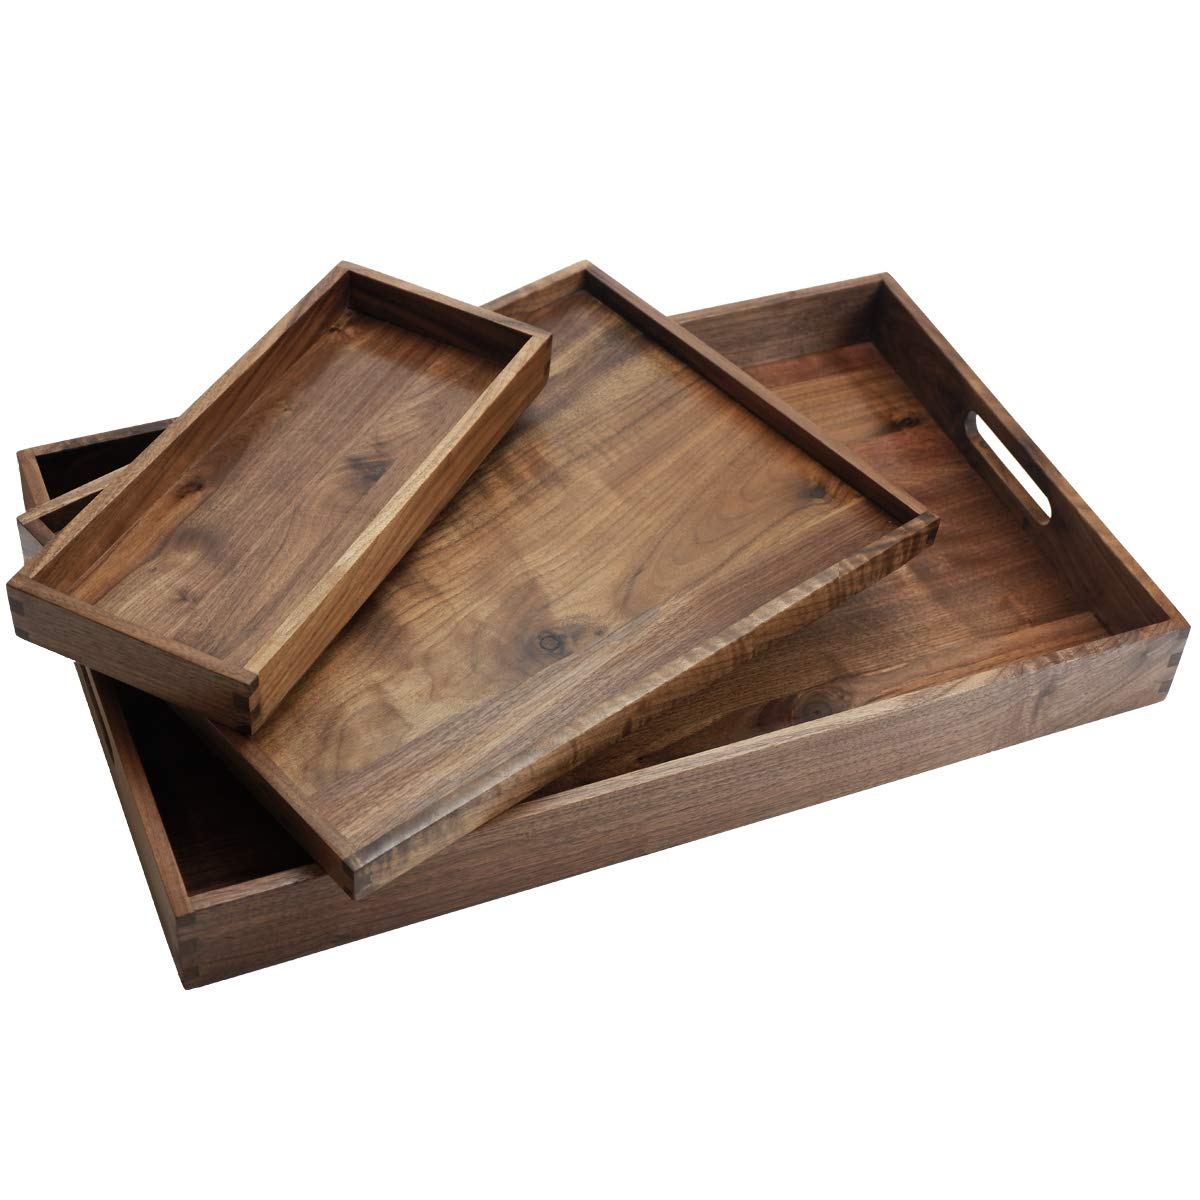 MAGIGO Set of 3 Rectangle Solid Black Walnut Wood Decorative Serving Trays - Large, Medium Ottoman Trays Serve Tea Coffee or Breakfast in Bed, and Small Tray for Odds and Ends